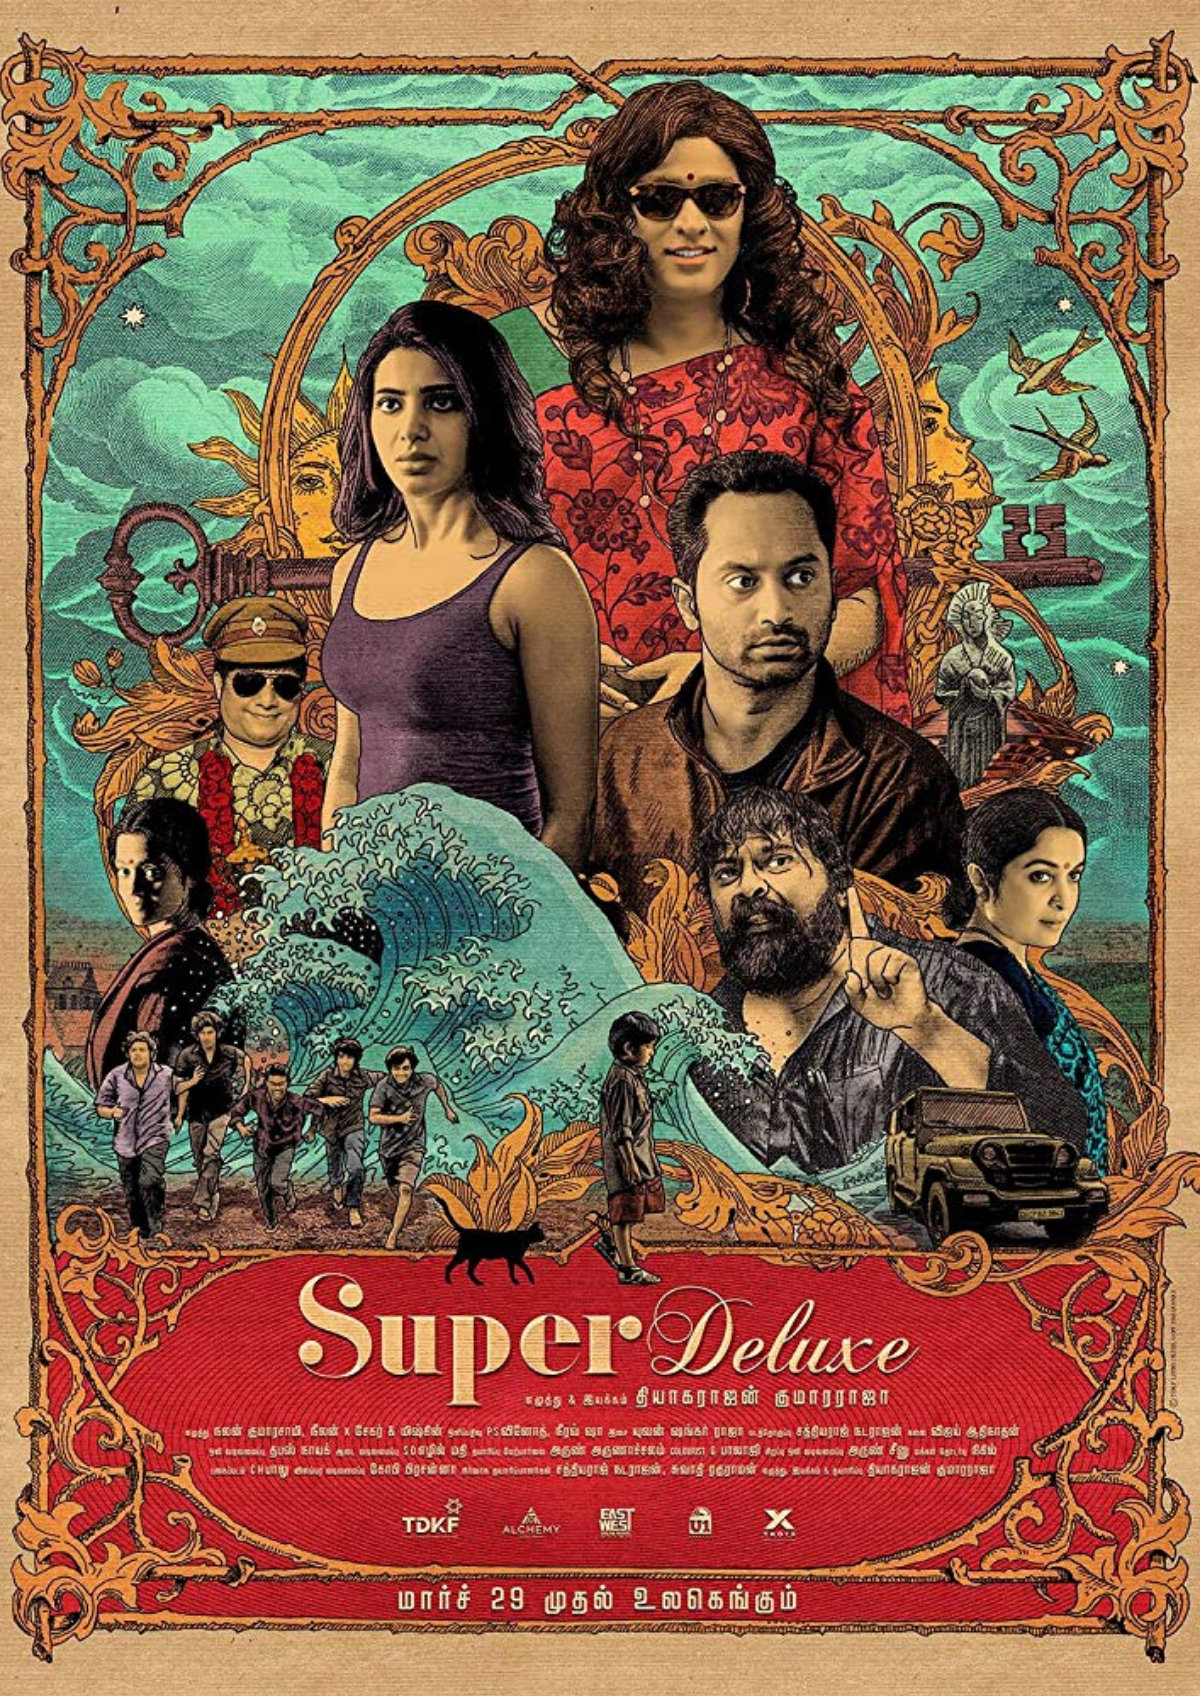 'Super Deluxe' movie poster